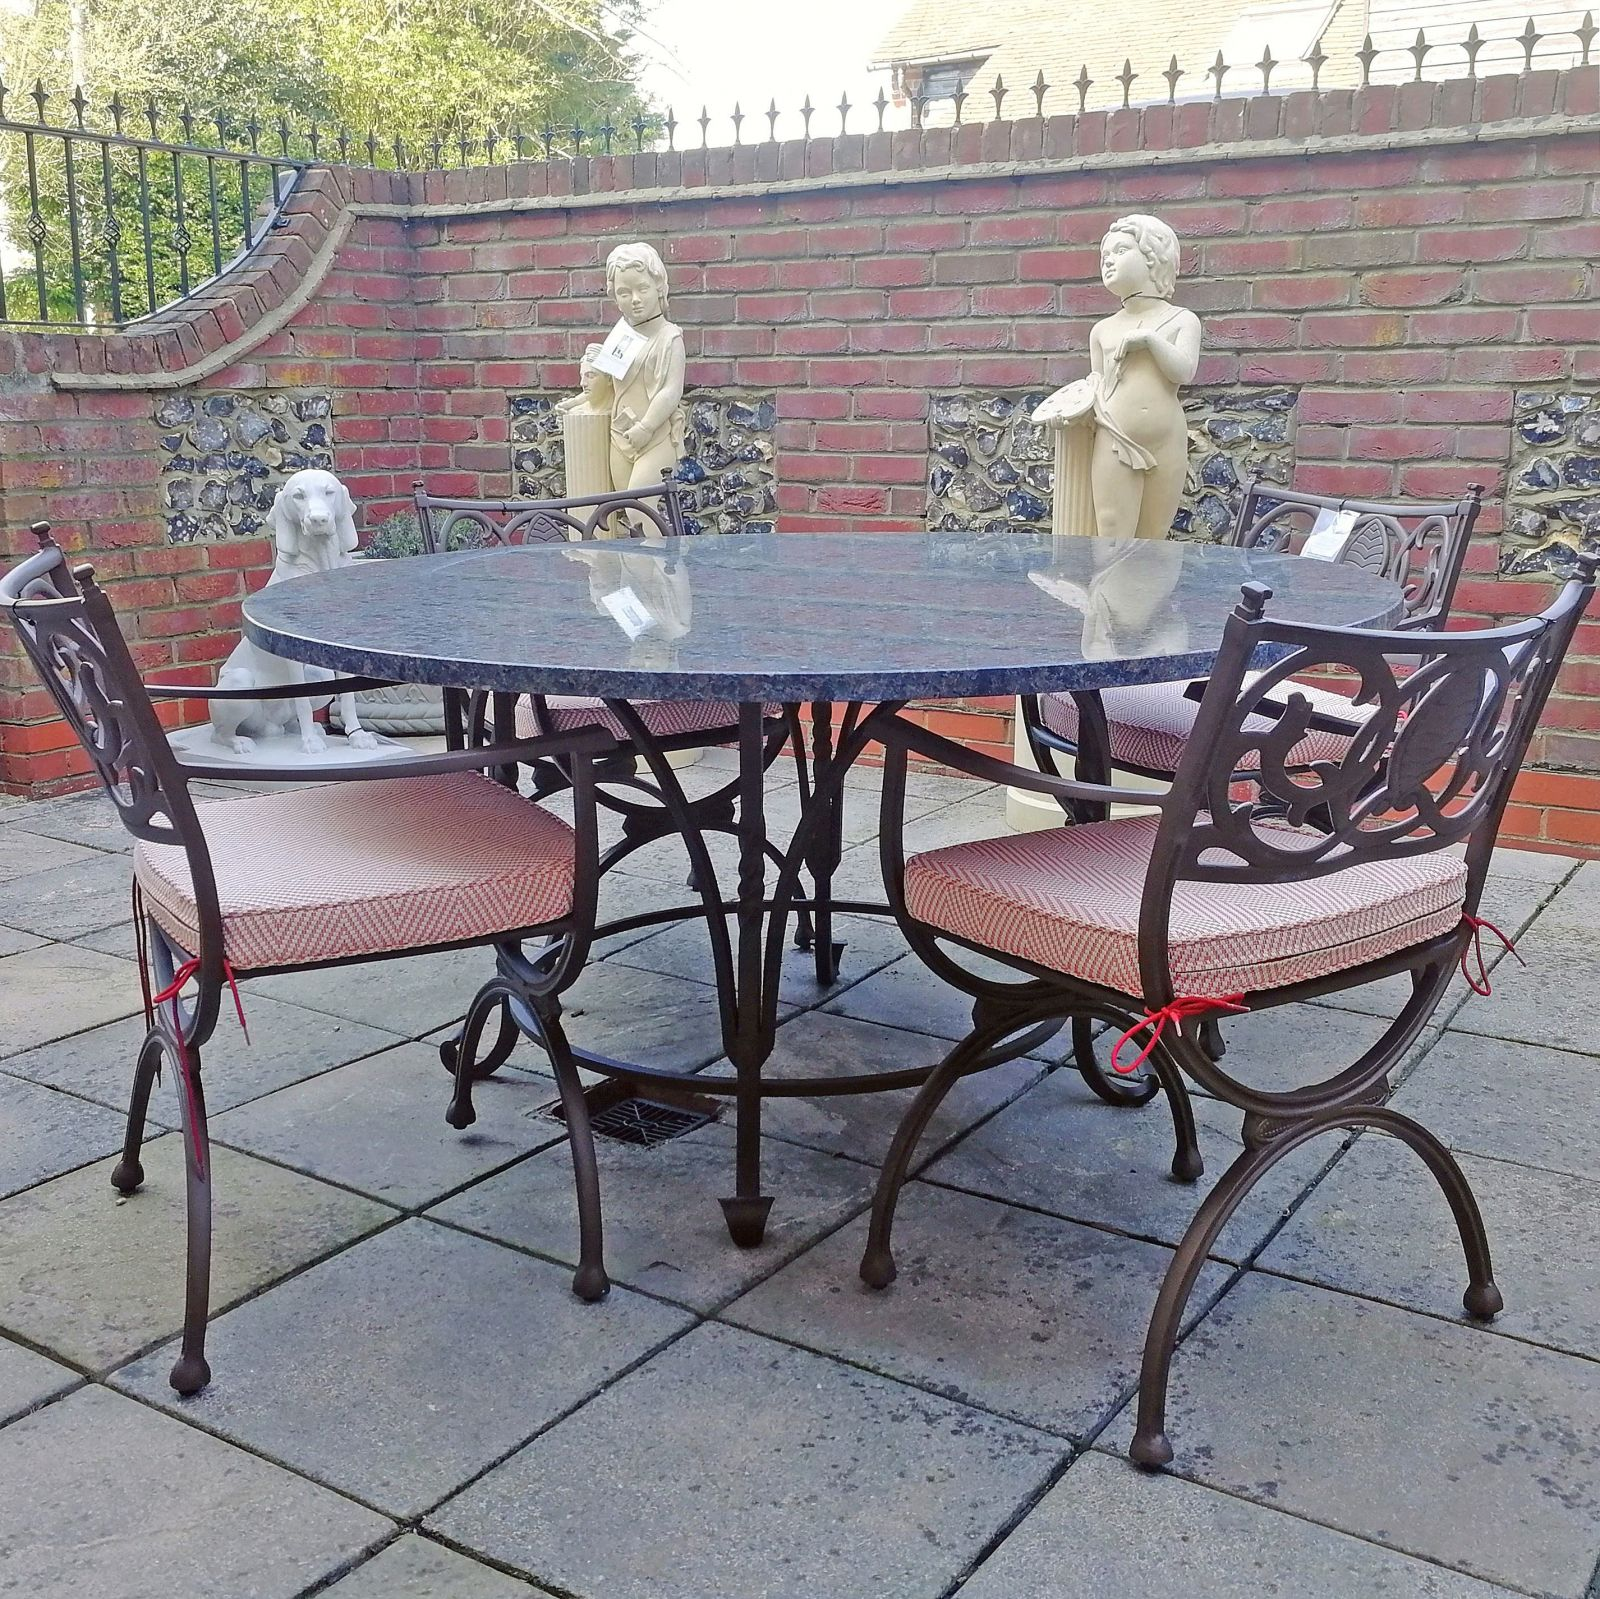 Bespoke granite outdoor tables made to order